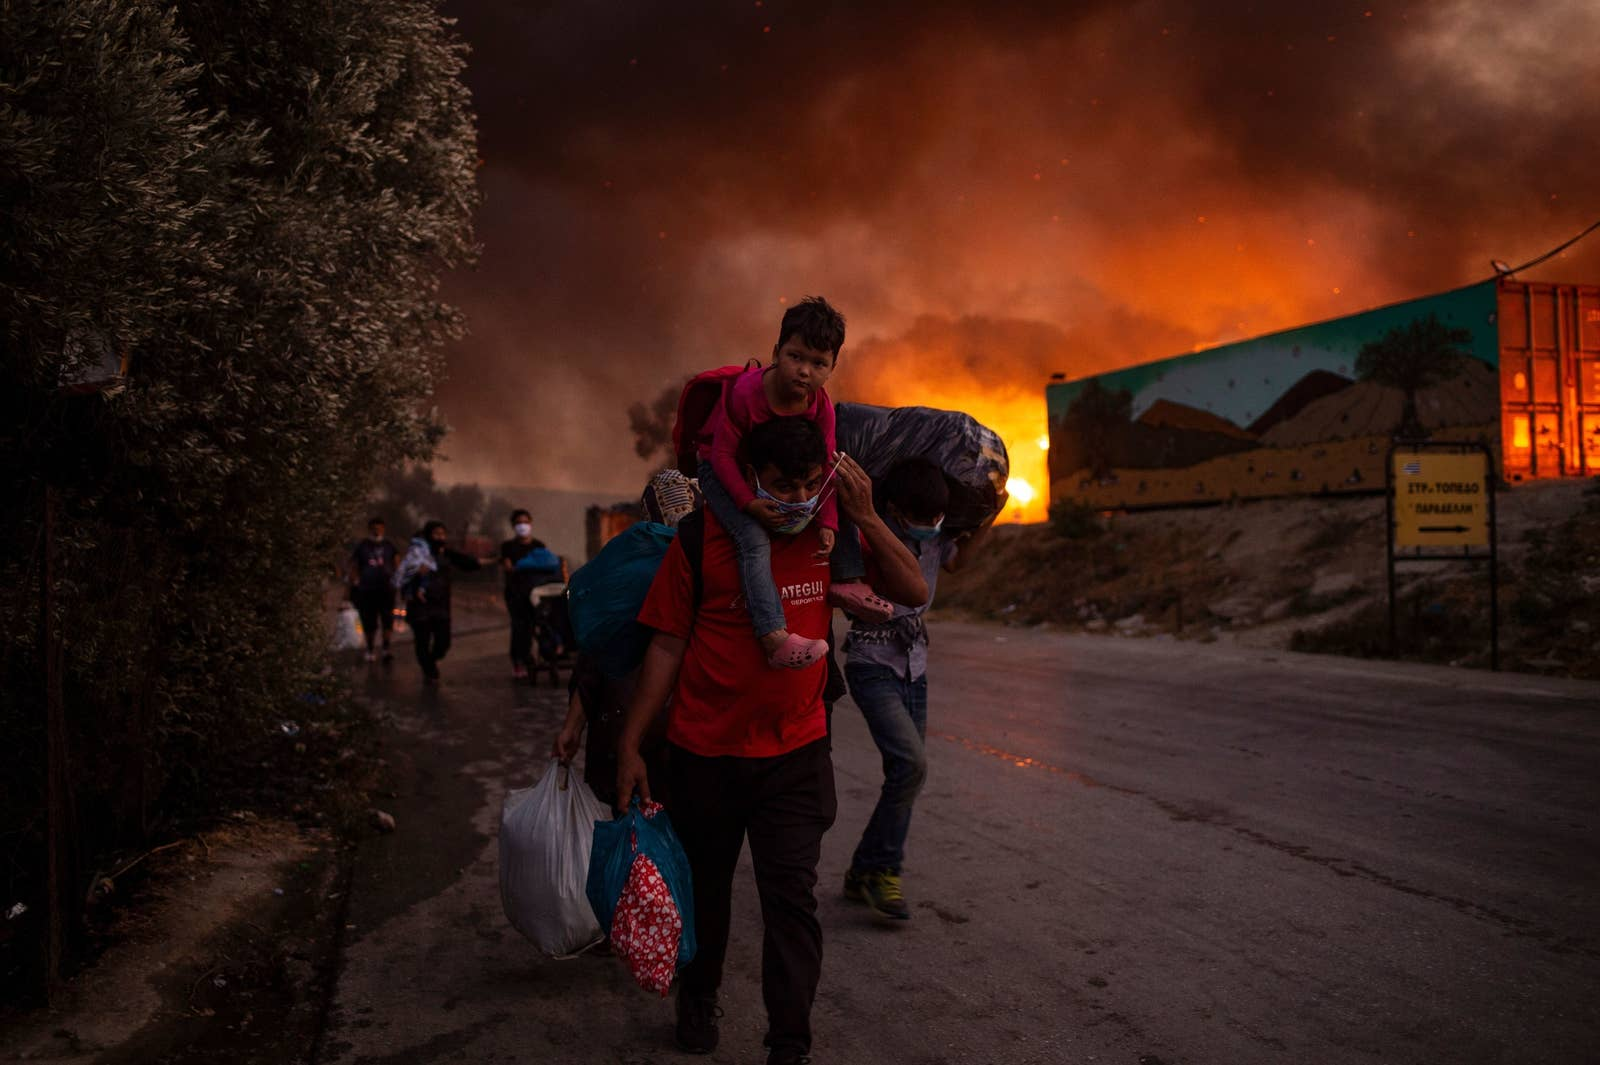 Angelos Tzortzinis / Getty Images